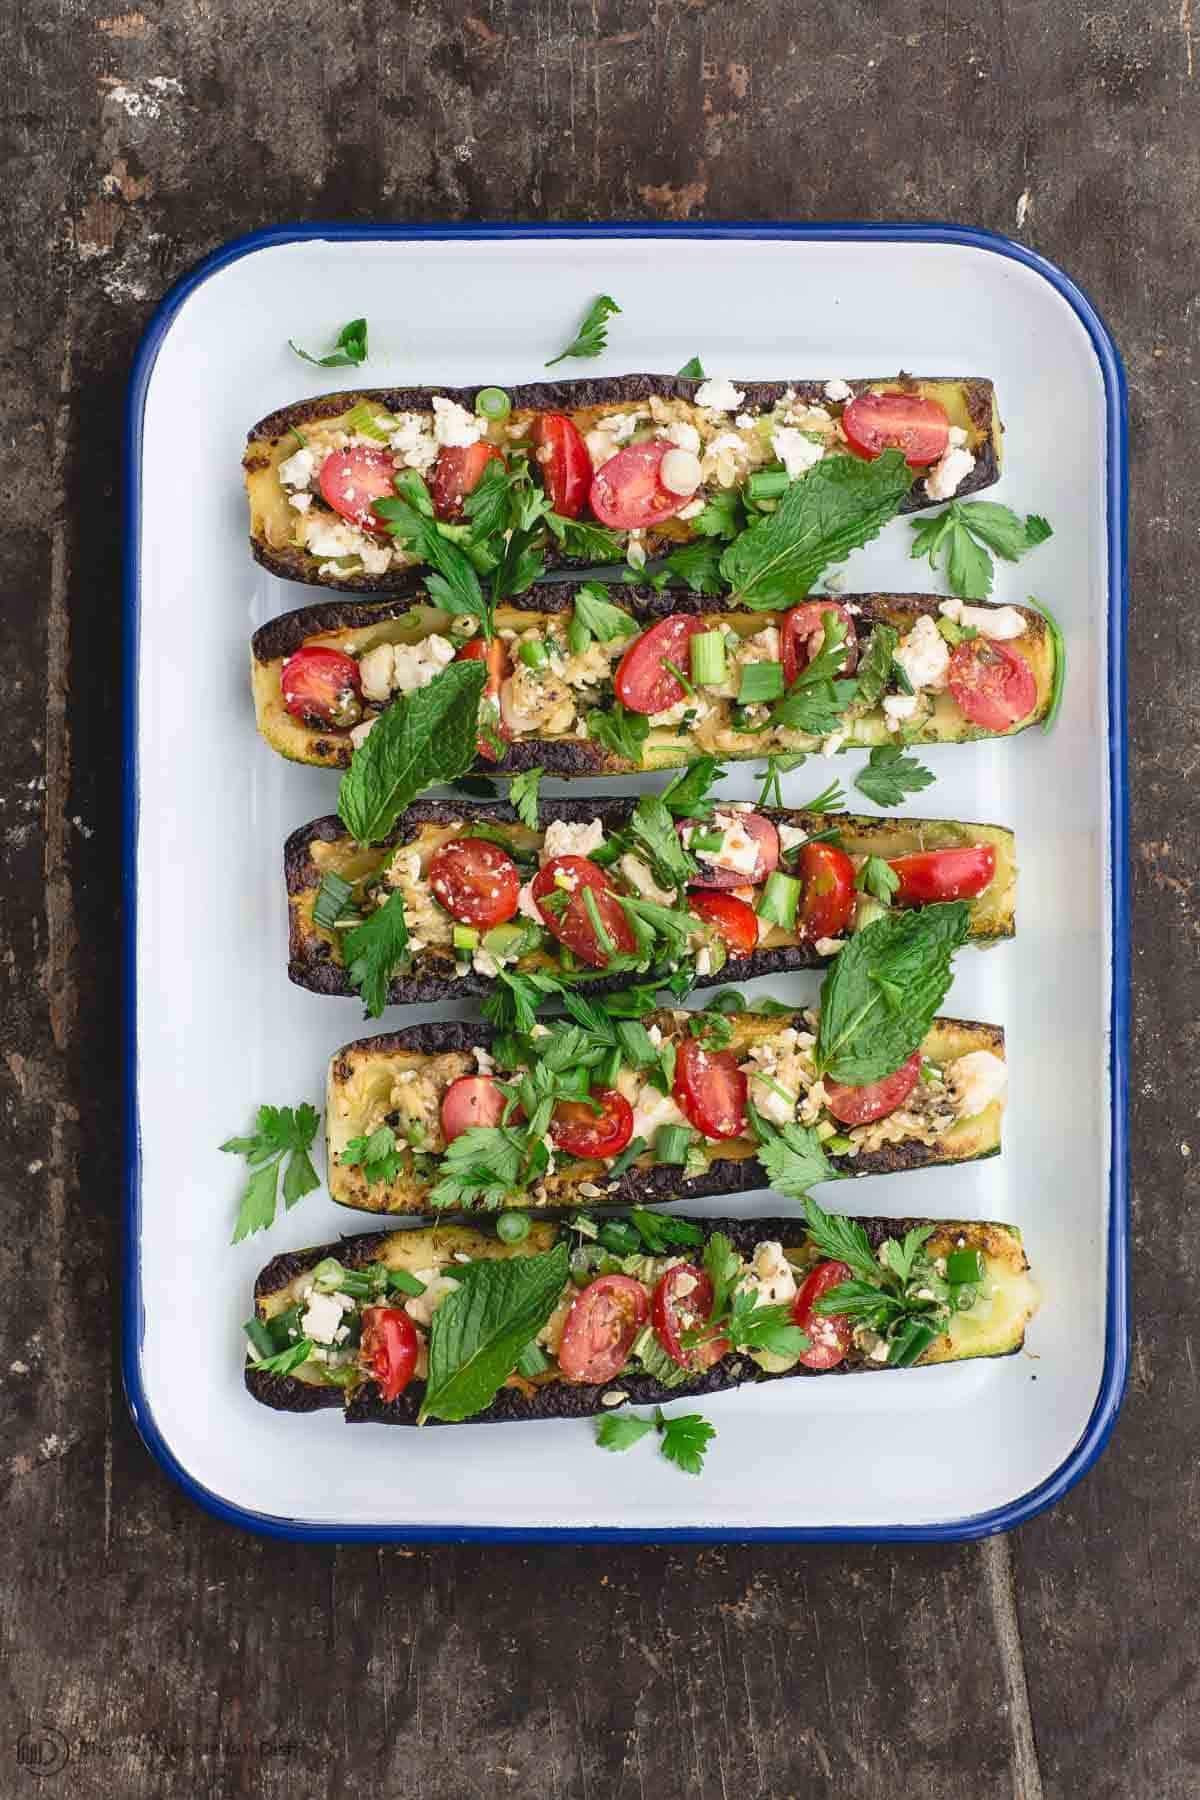 Mediterranean grilled zucchini boats filled with tomato, feta, and fresh herb mixture